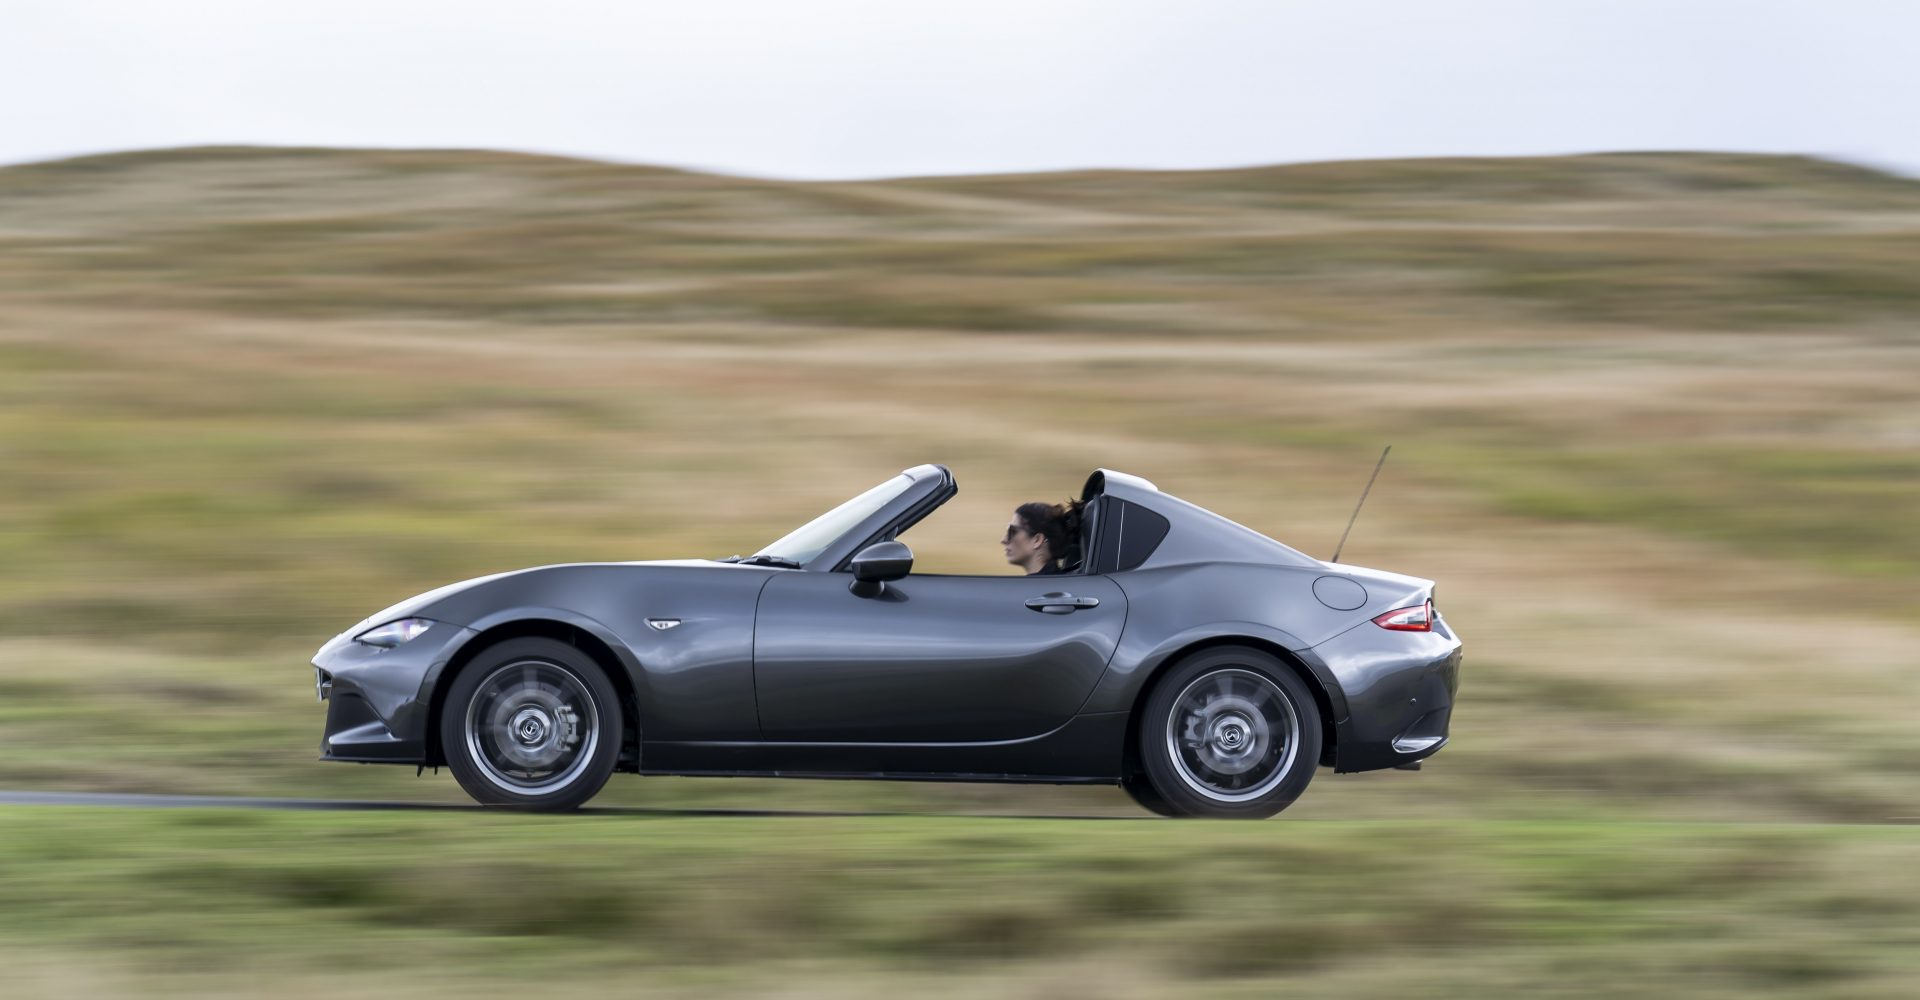 Mazda updates MX-5 for 2020 with new trim and improved equipment